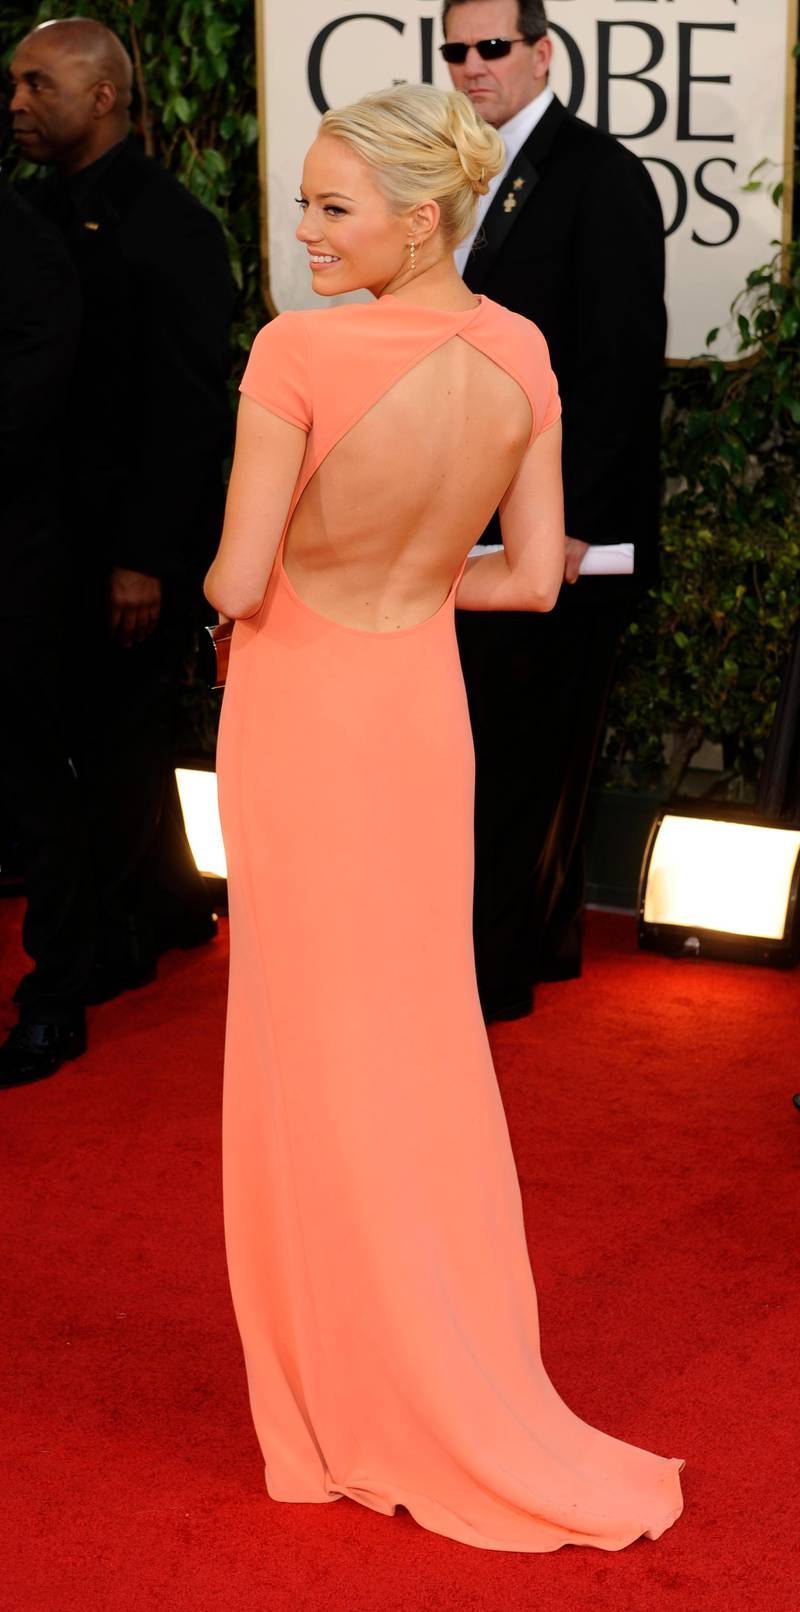 epa02533715 US actress Emma Stone arrives for the 68th Golden Globe Awards held at the Beverly Hilton Hotel in Los Angeles, California, USA, 16 January 2011.  EPA/MIKE NELSON